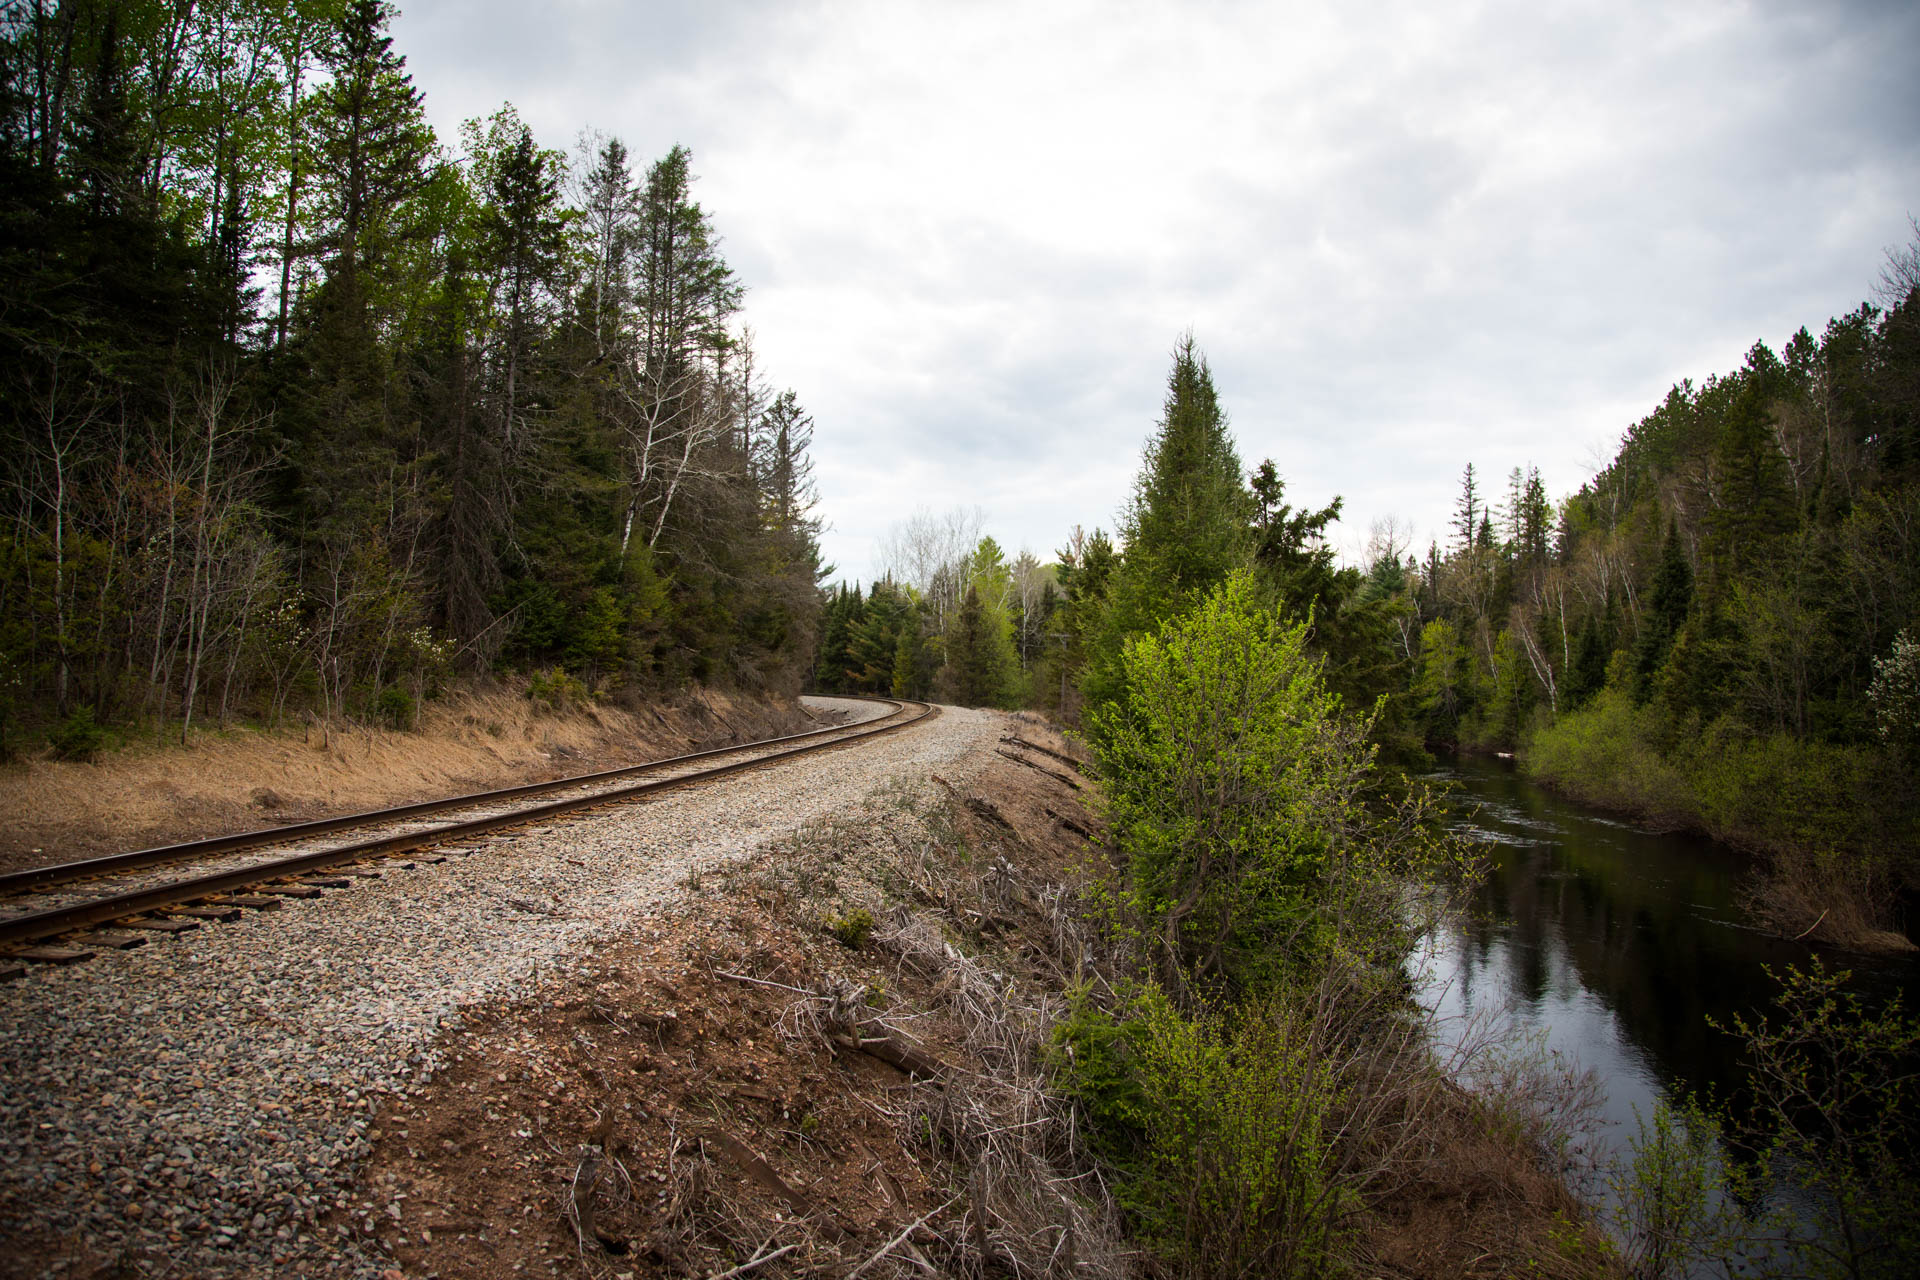 cn-chequamegon-national-forest-steel-arteries-mellen-wi-0371